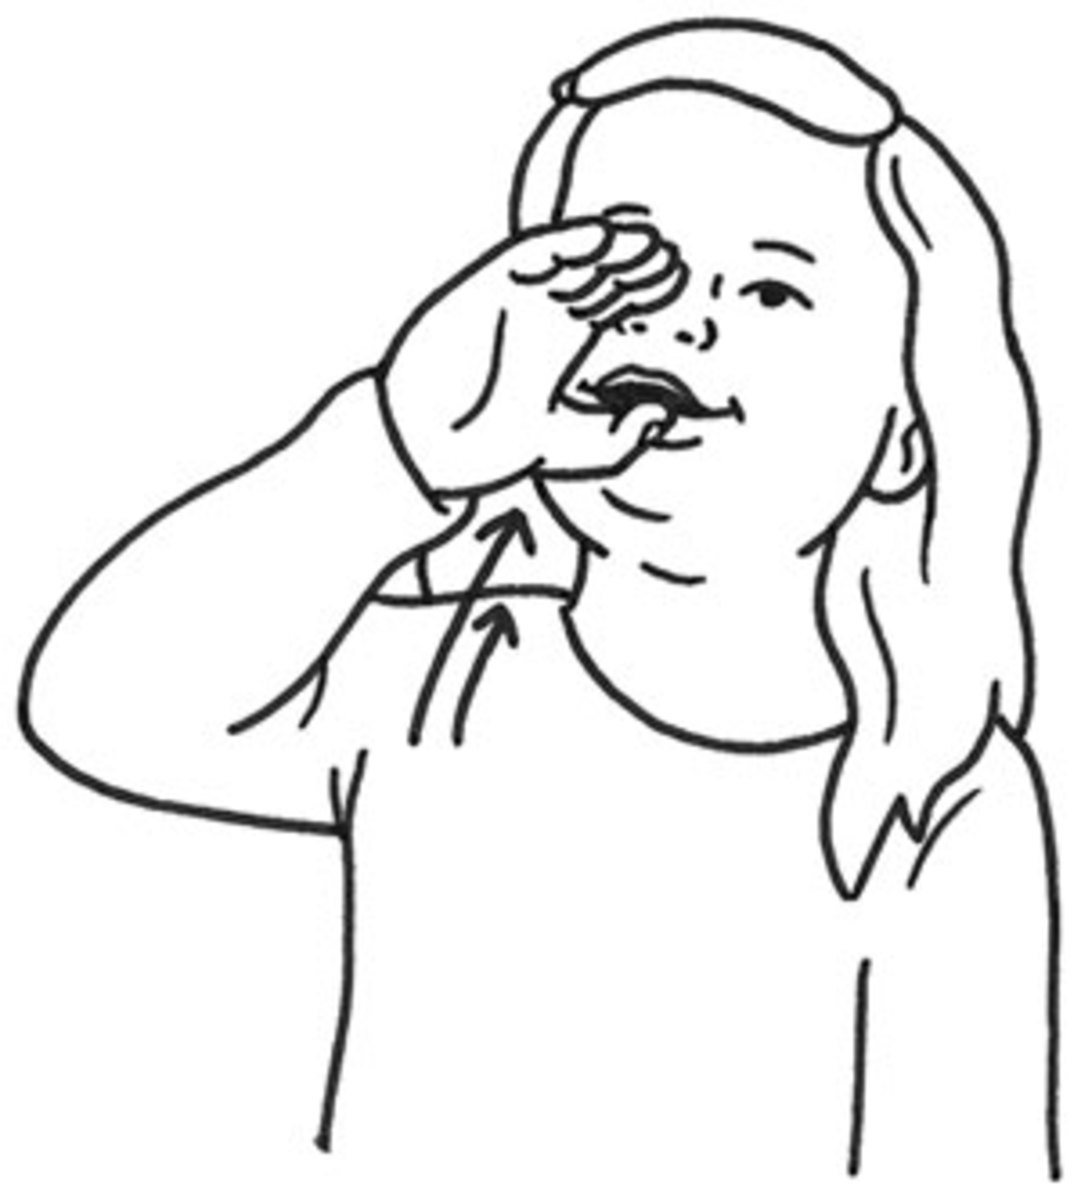 Drink in Sign Language: hold your hand in a C curve, pull it up toward your mouth and tip it as if drinking from a glass.